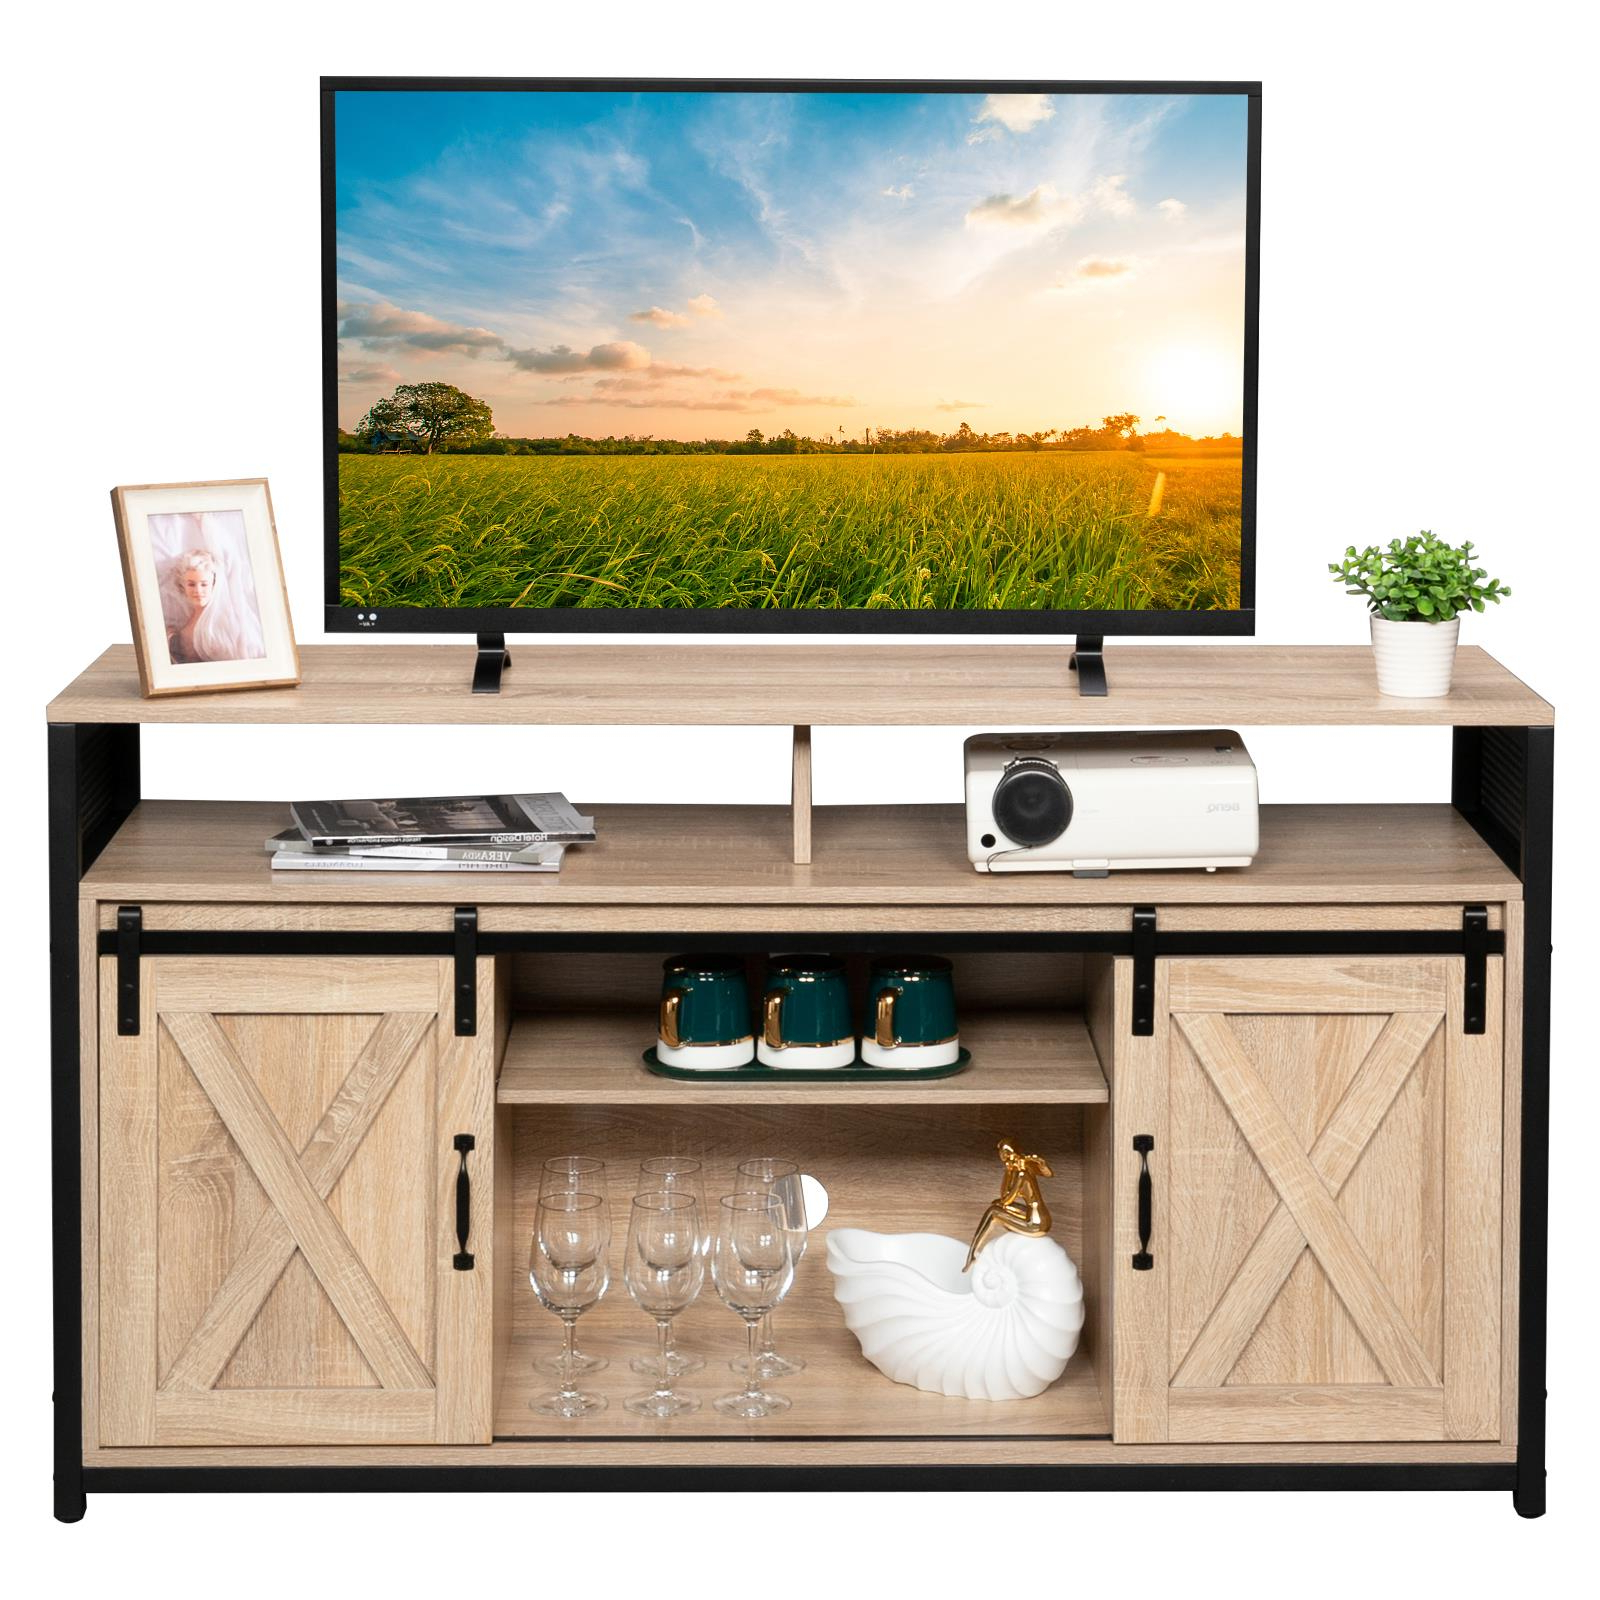 Modern Sliding Door Tv Stands Pertaining To Newest Salonmore Modern Farmhouse Sliding Barn Door Wood  (View 2 of 10)